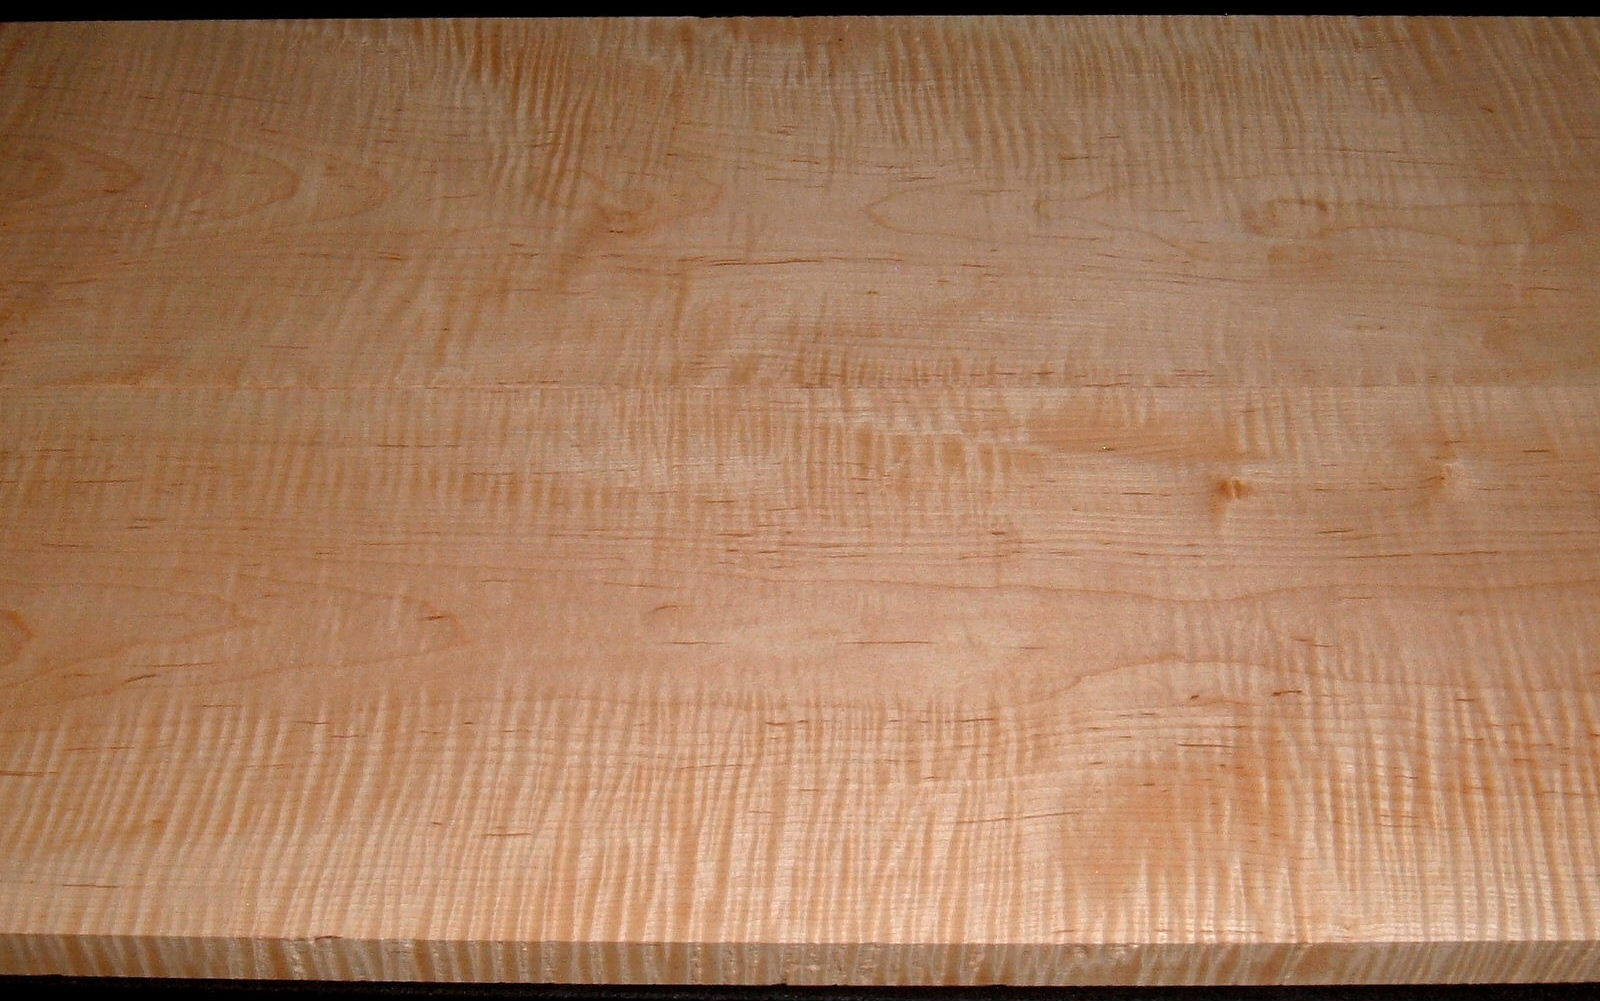 M2007-550L, 1-1/8x9-1/2x50 ,1-1/16x9-7/8x50, Curly Tiger Maple, Cut from Same Plank